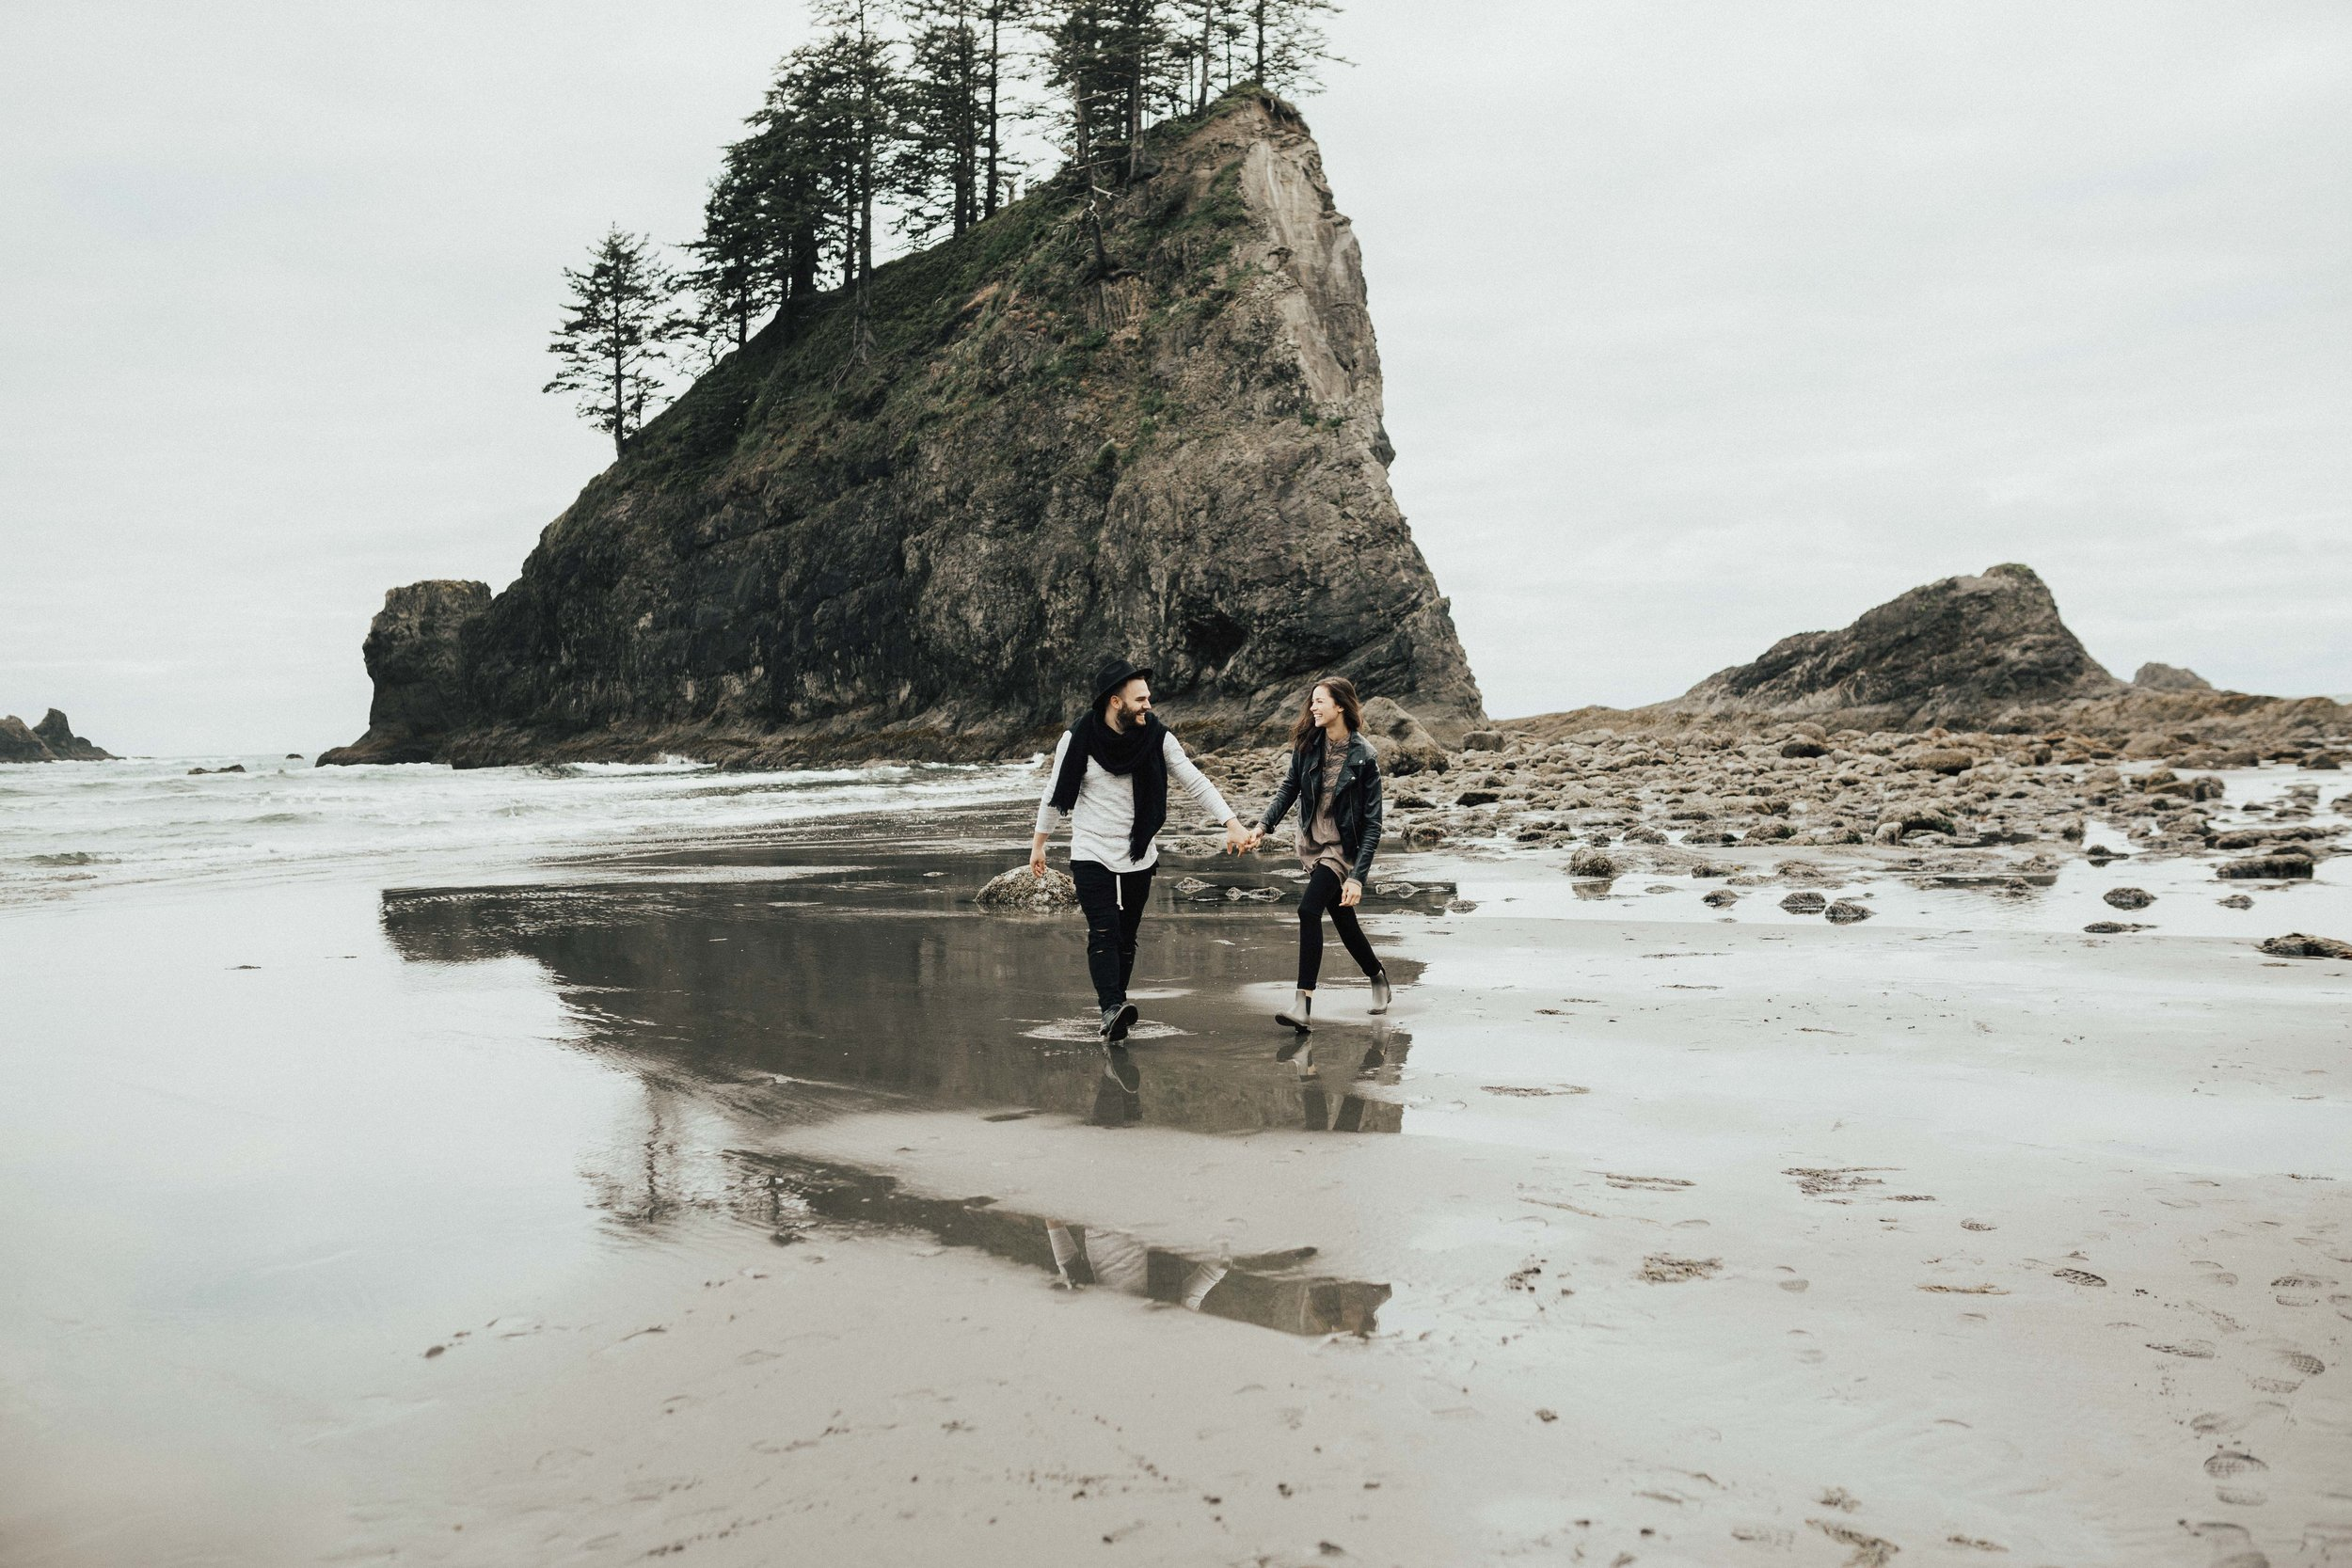 La Push Beach_Washinton_Dawn McClannan Photo-33.jpg